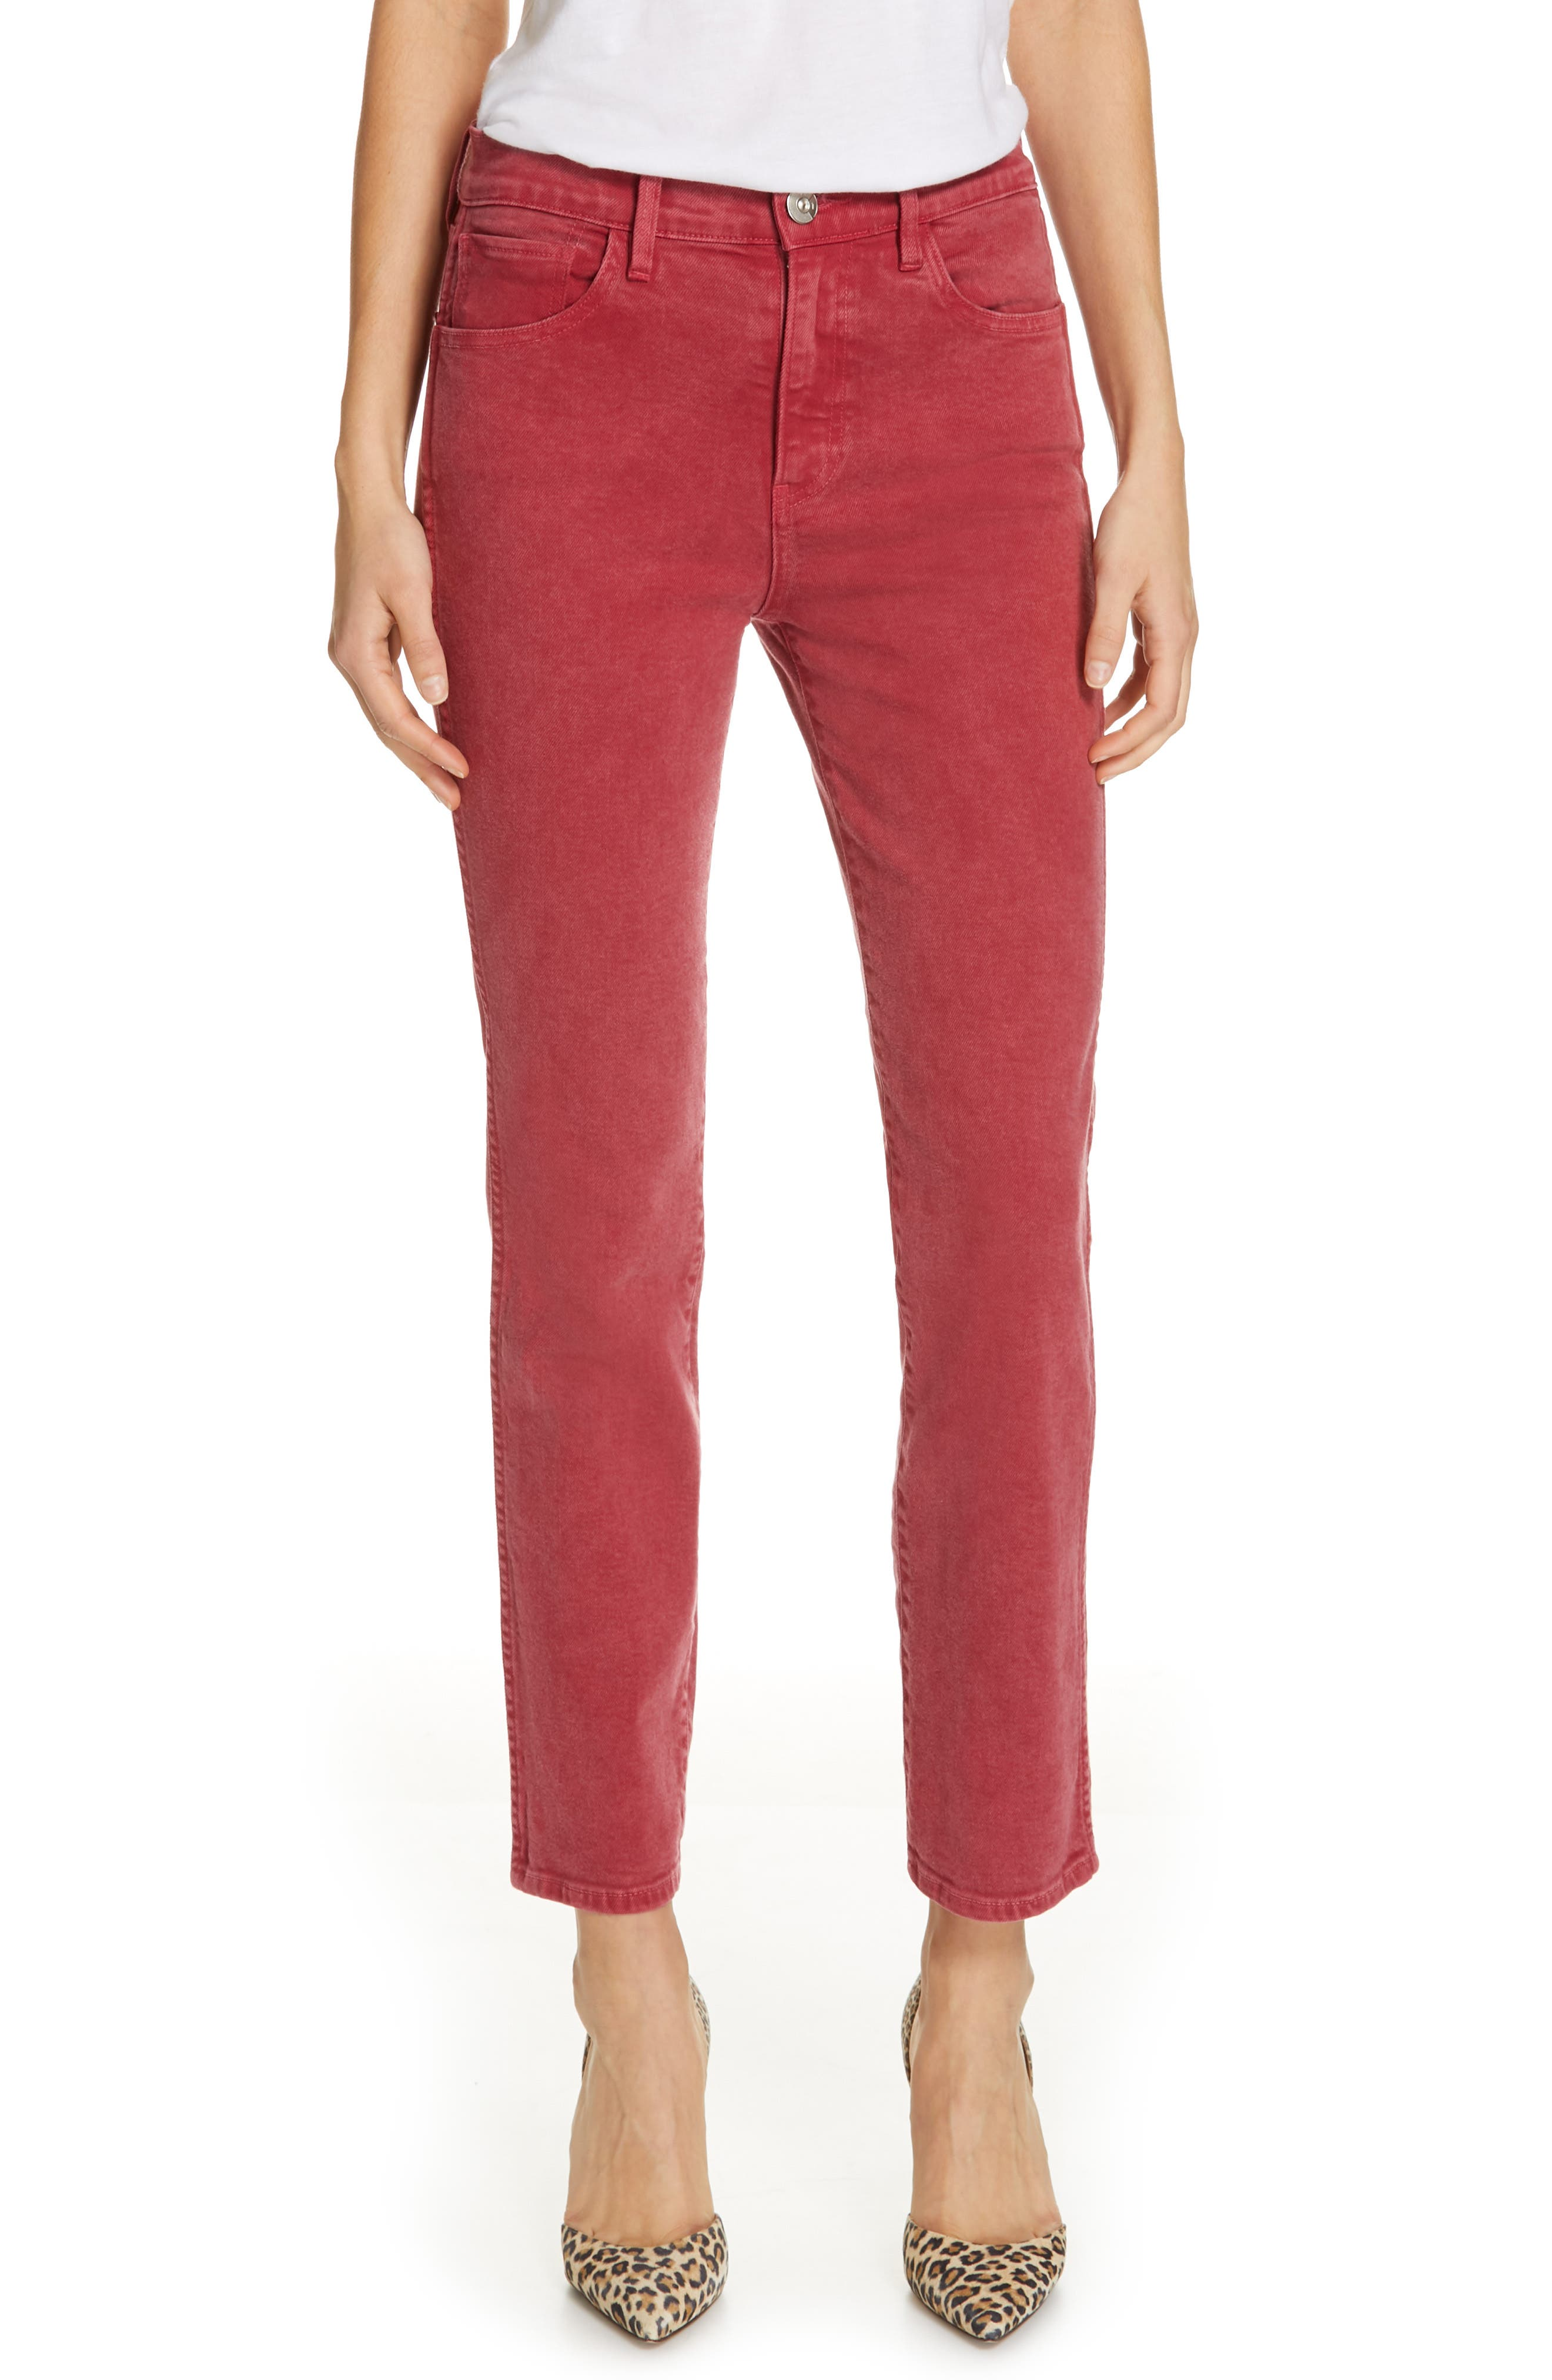 3X1 NYC,                             Stevie Straight Leg Jeans,                             Main thumbnail 1, color,                             MINERAL RUST RED